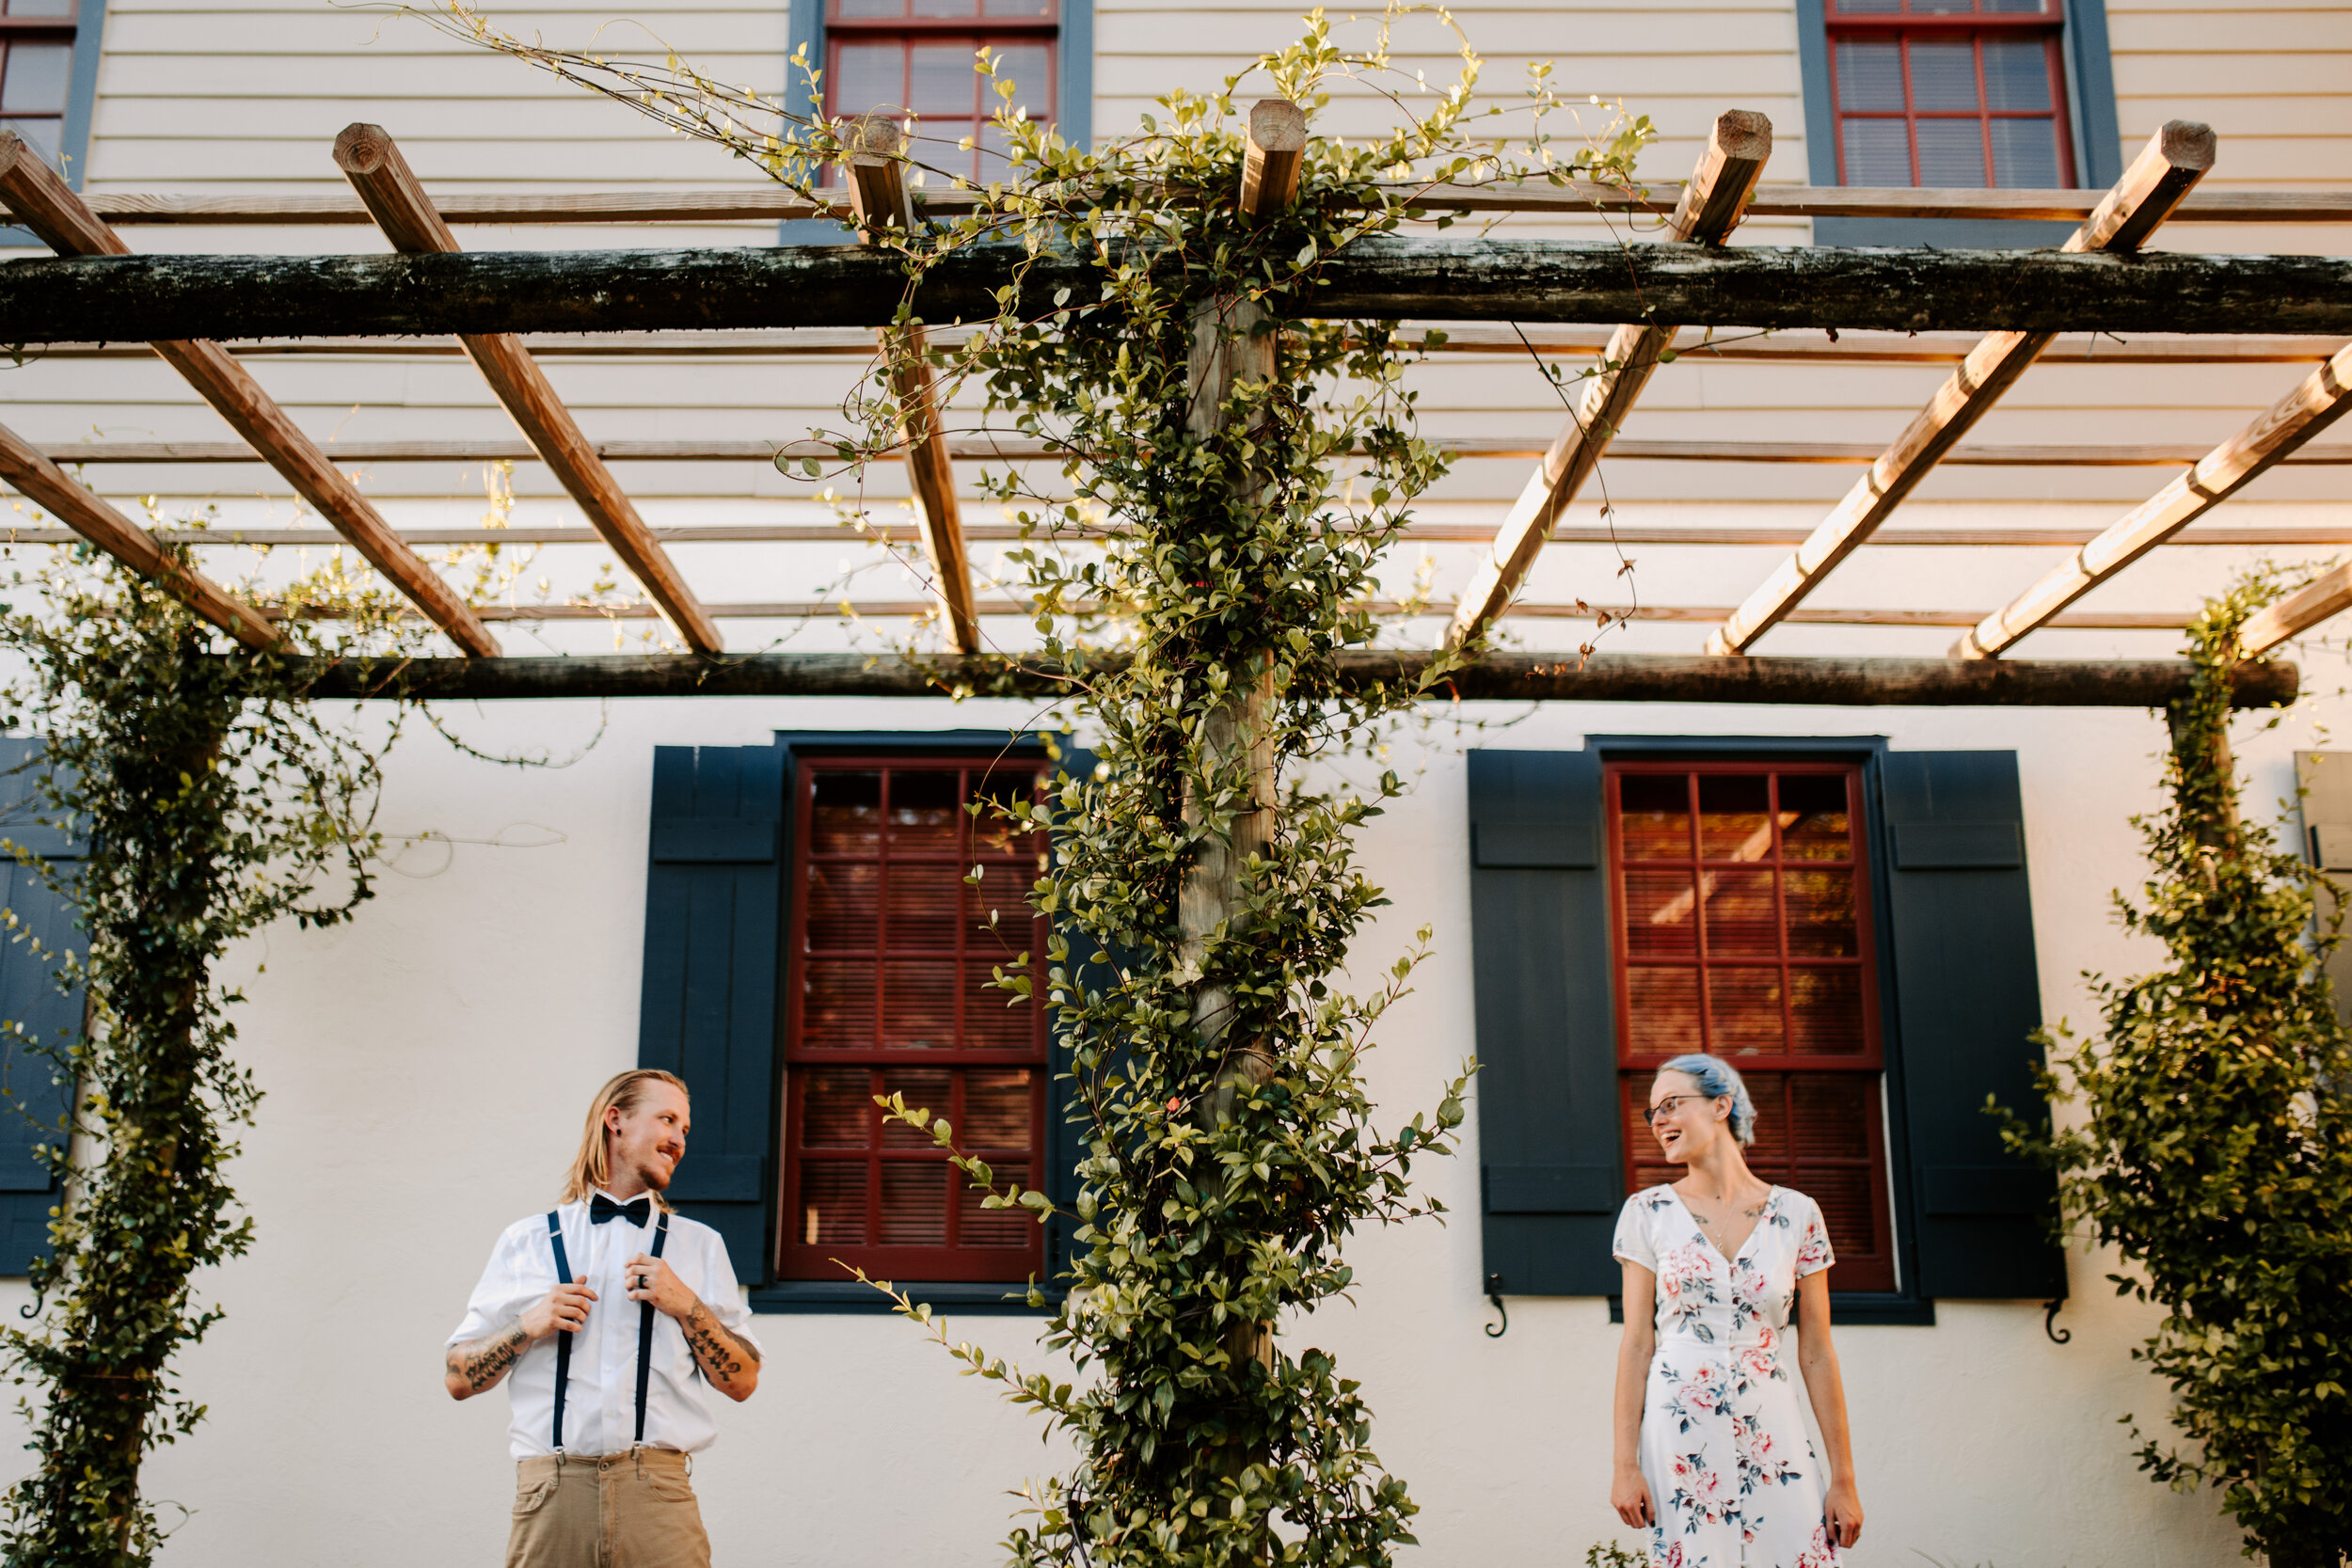 Ashalei_+_Clay_-_Native_Expressions_-_Downtown_St_Augustine_-_Engagement_Session-75.jpg